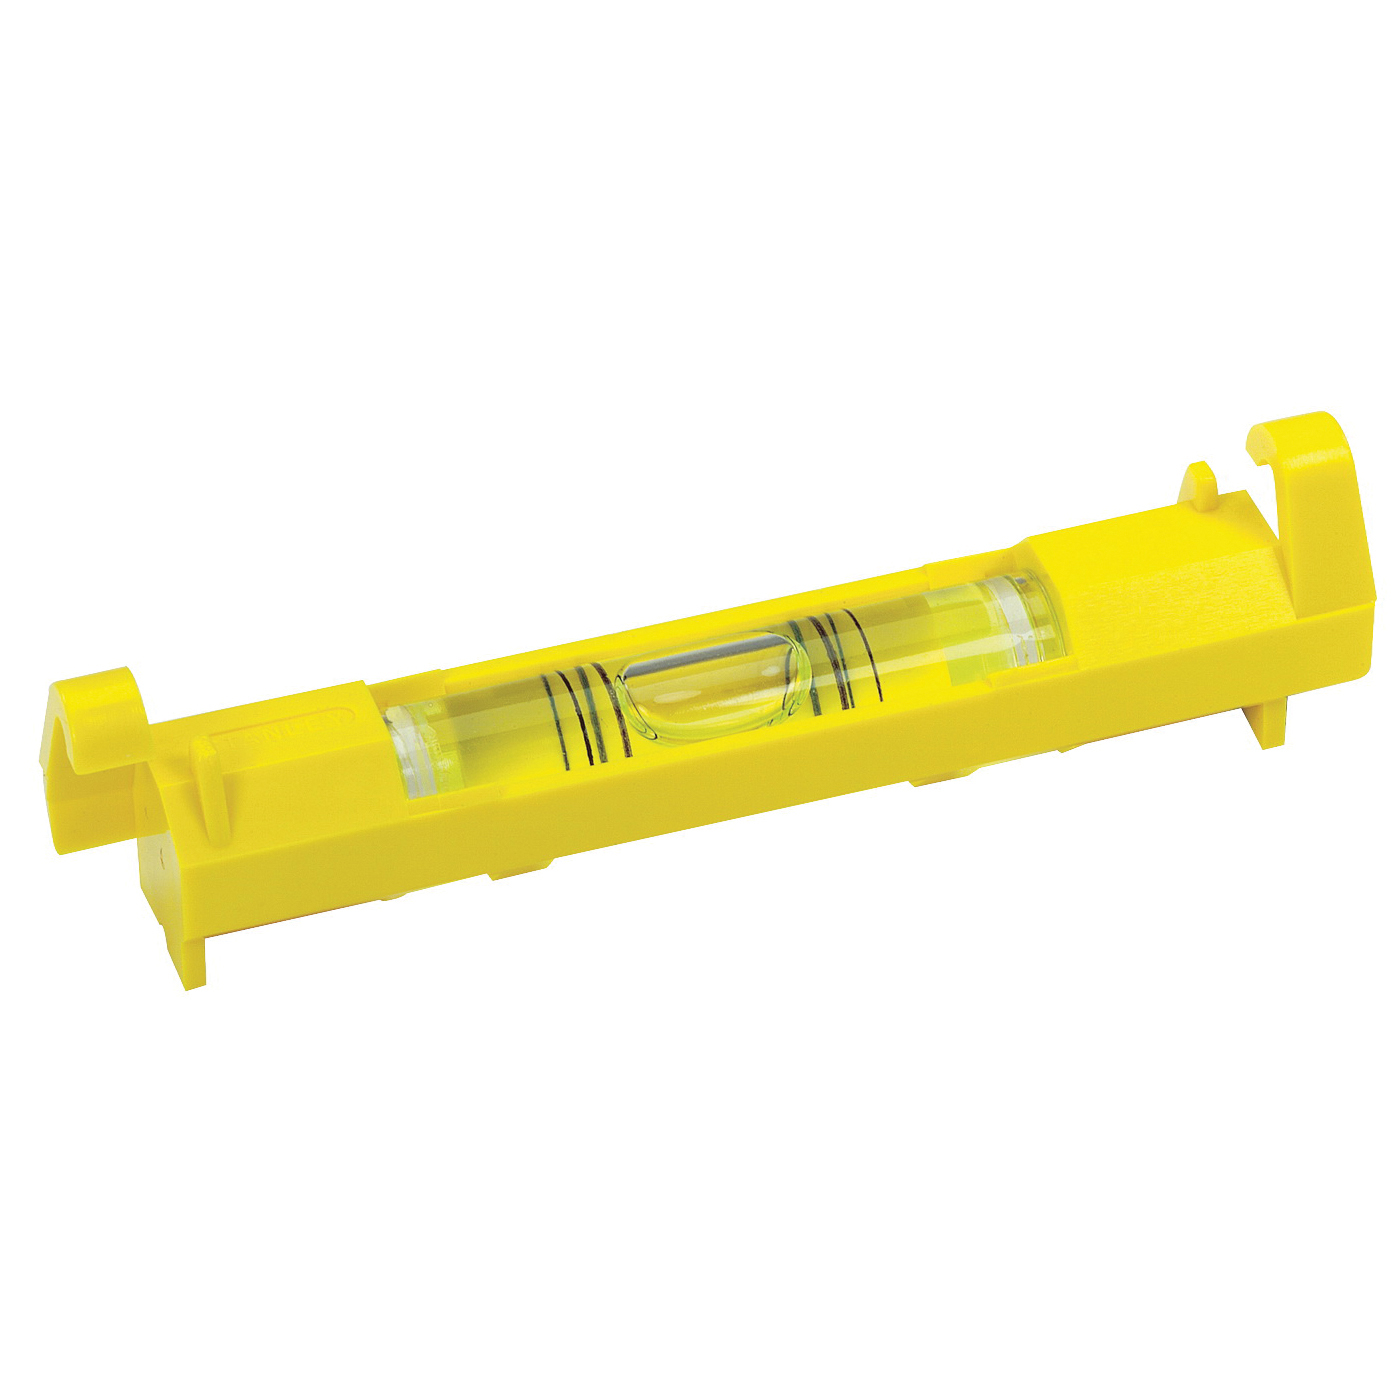 Picture of STANLEY 42-193 Line Level, 3-3/32 in L, 1 -Vial, 2 -Hang Hole, ABS, Yellow